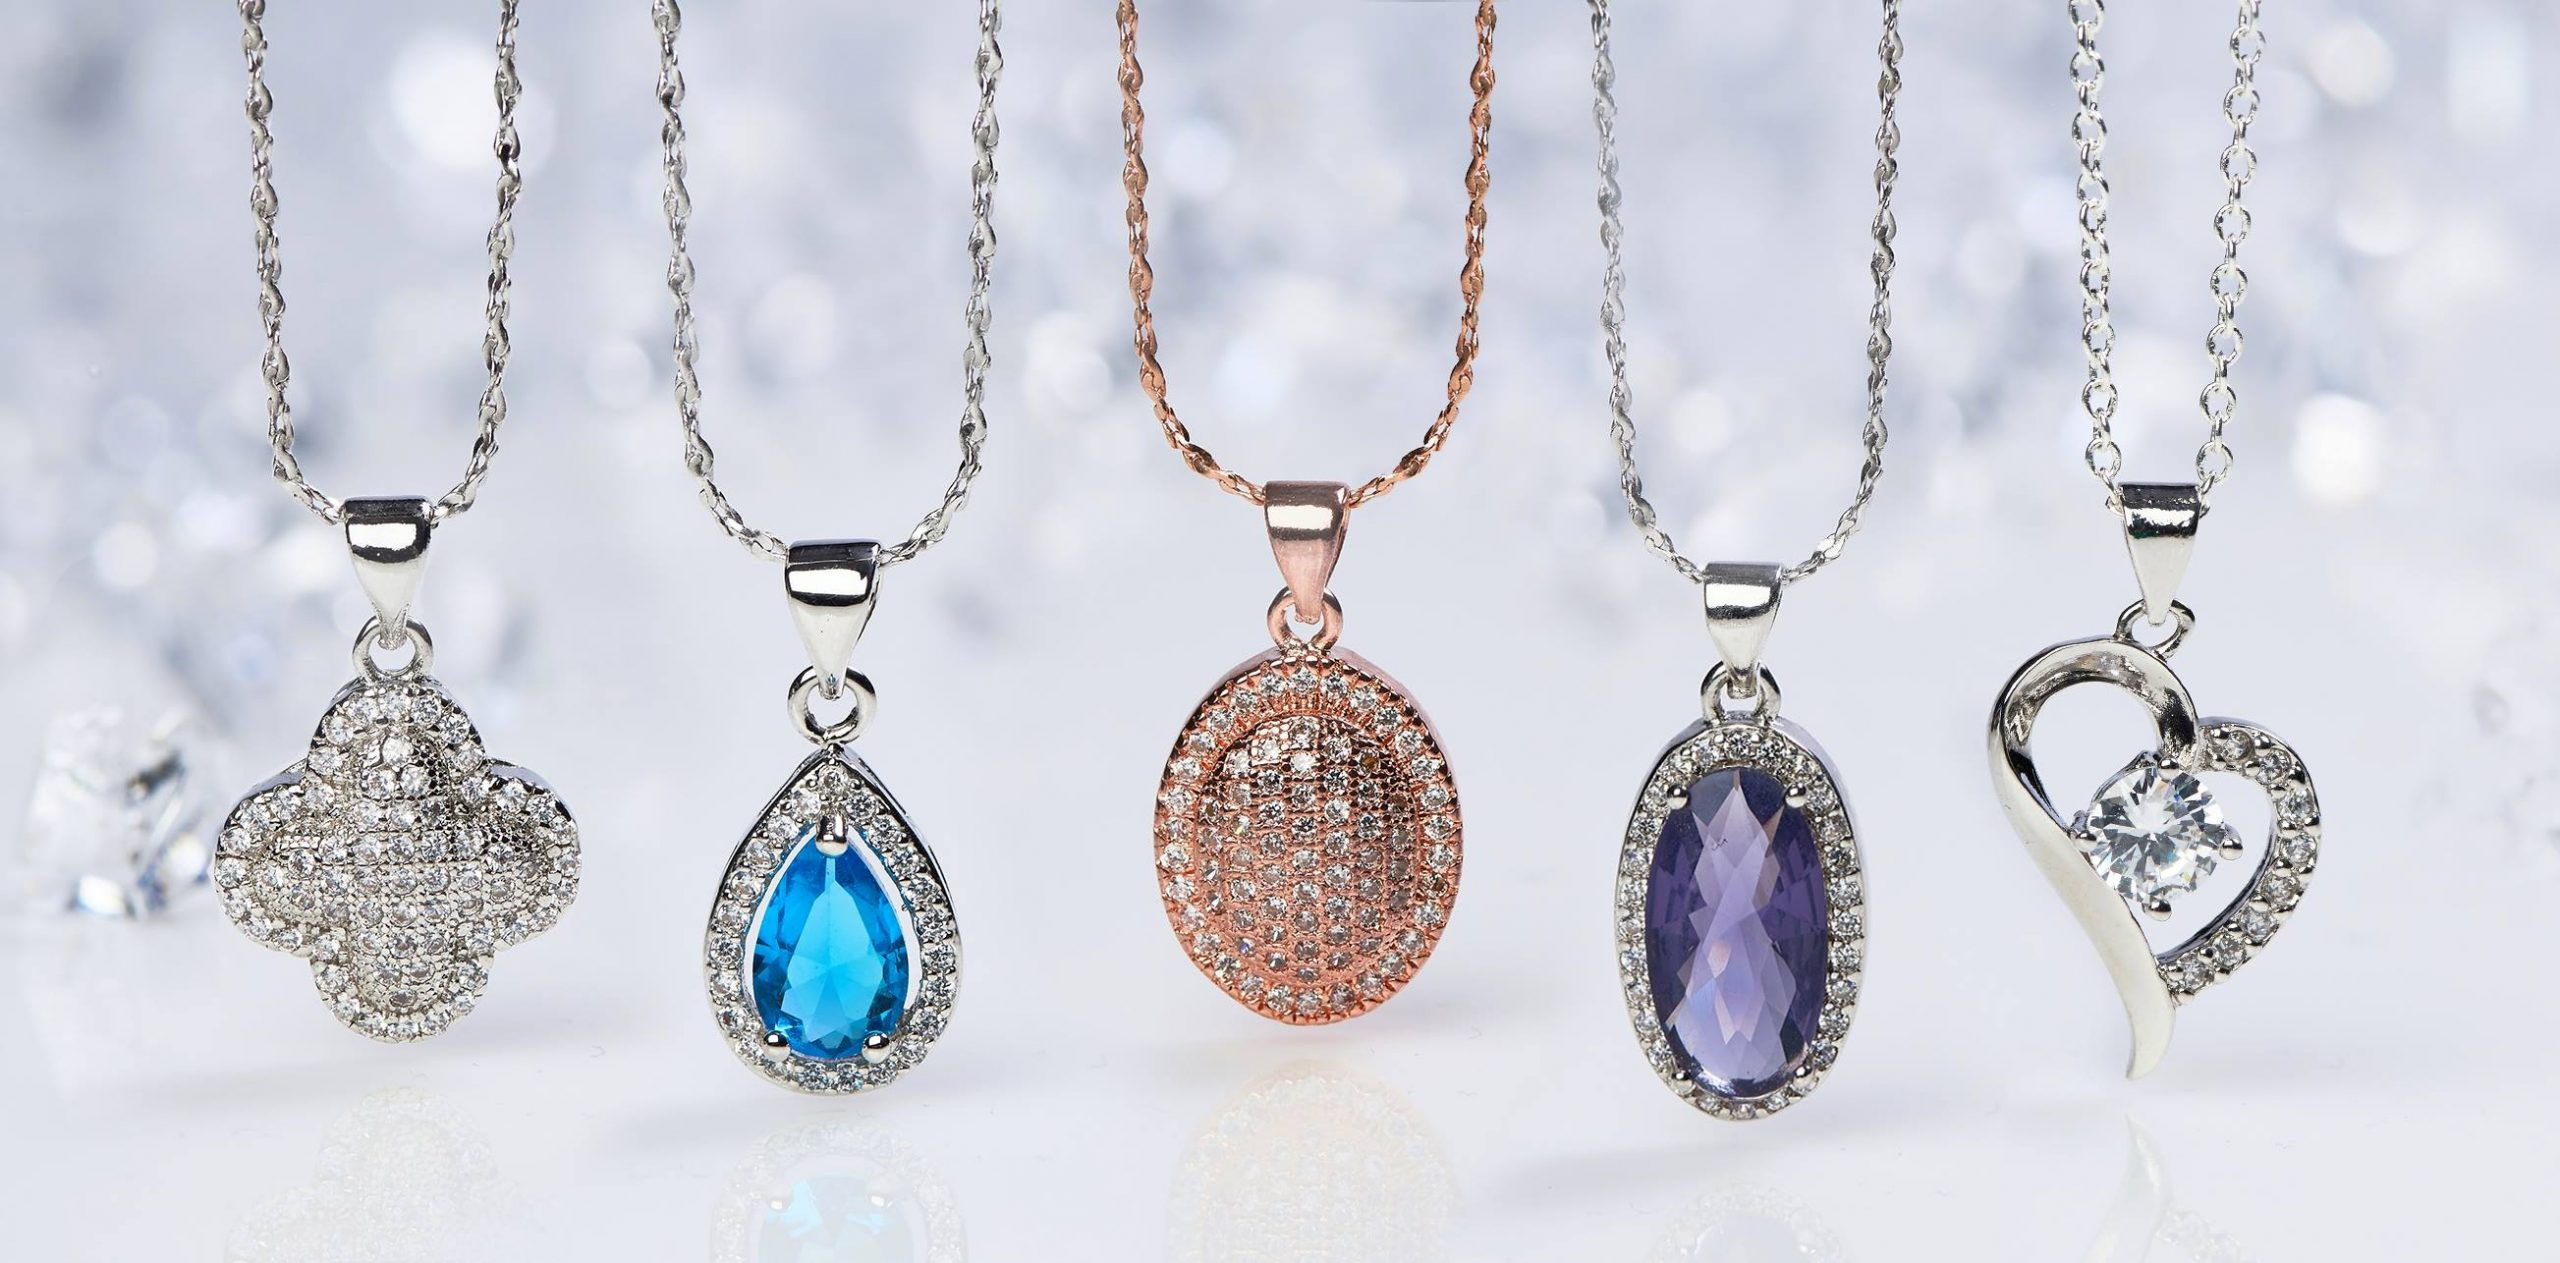 Need To Add Some Bling In Life? Buy Jewelry From Nikola Valenti!